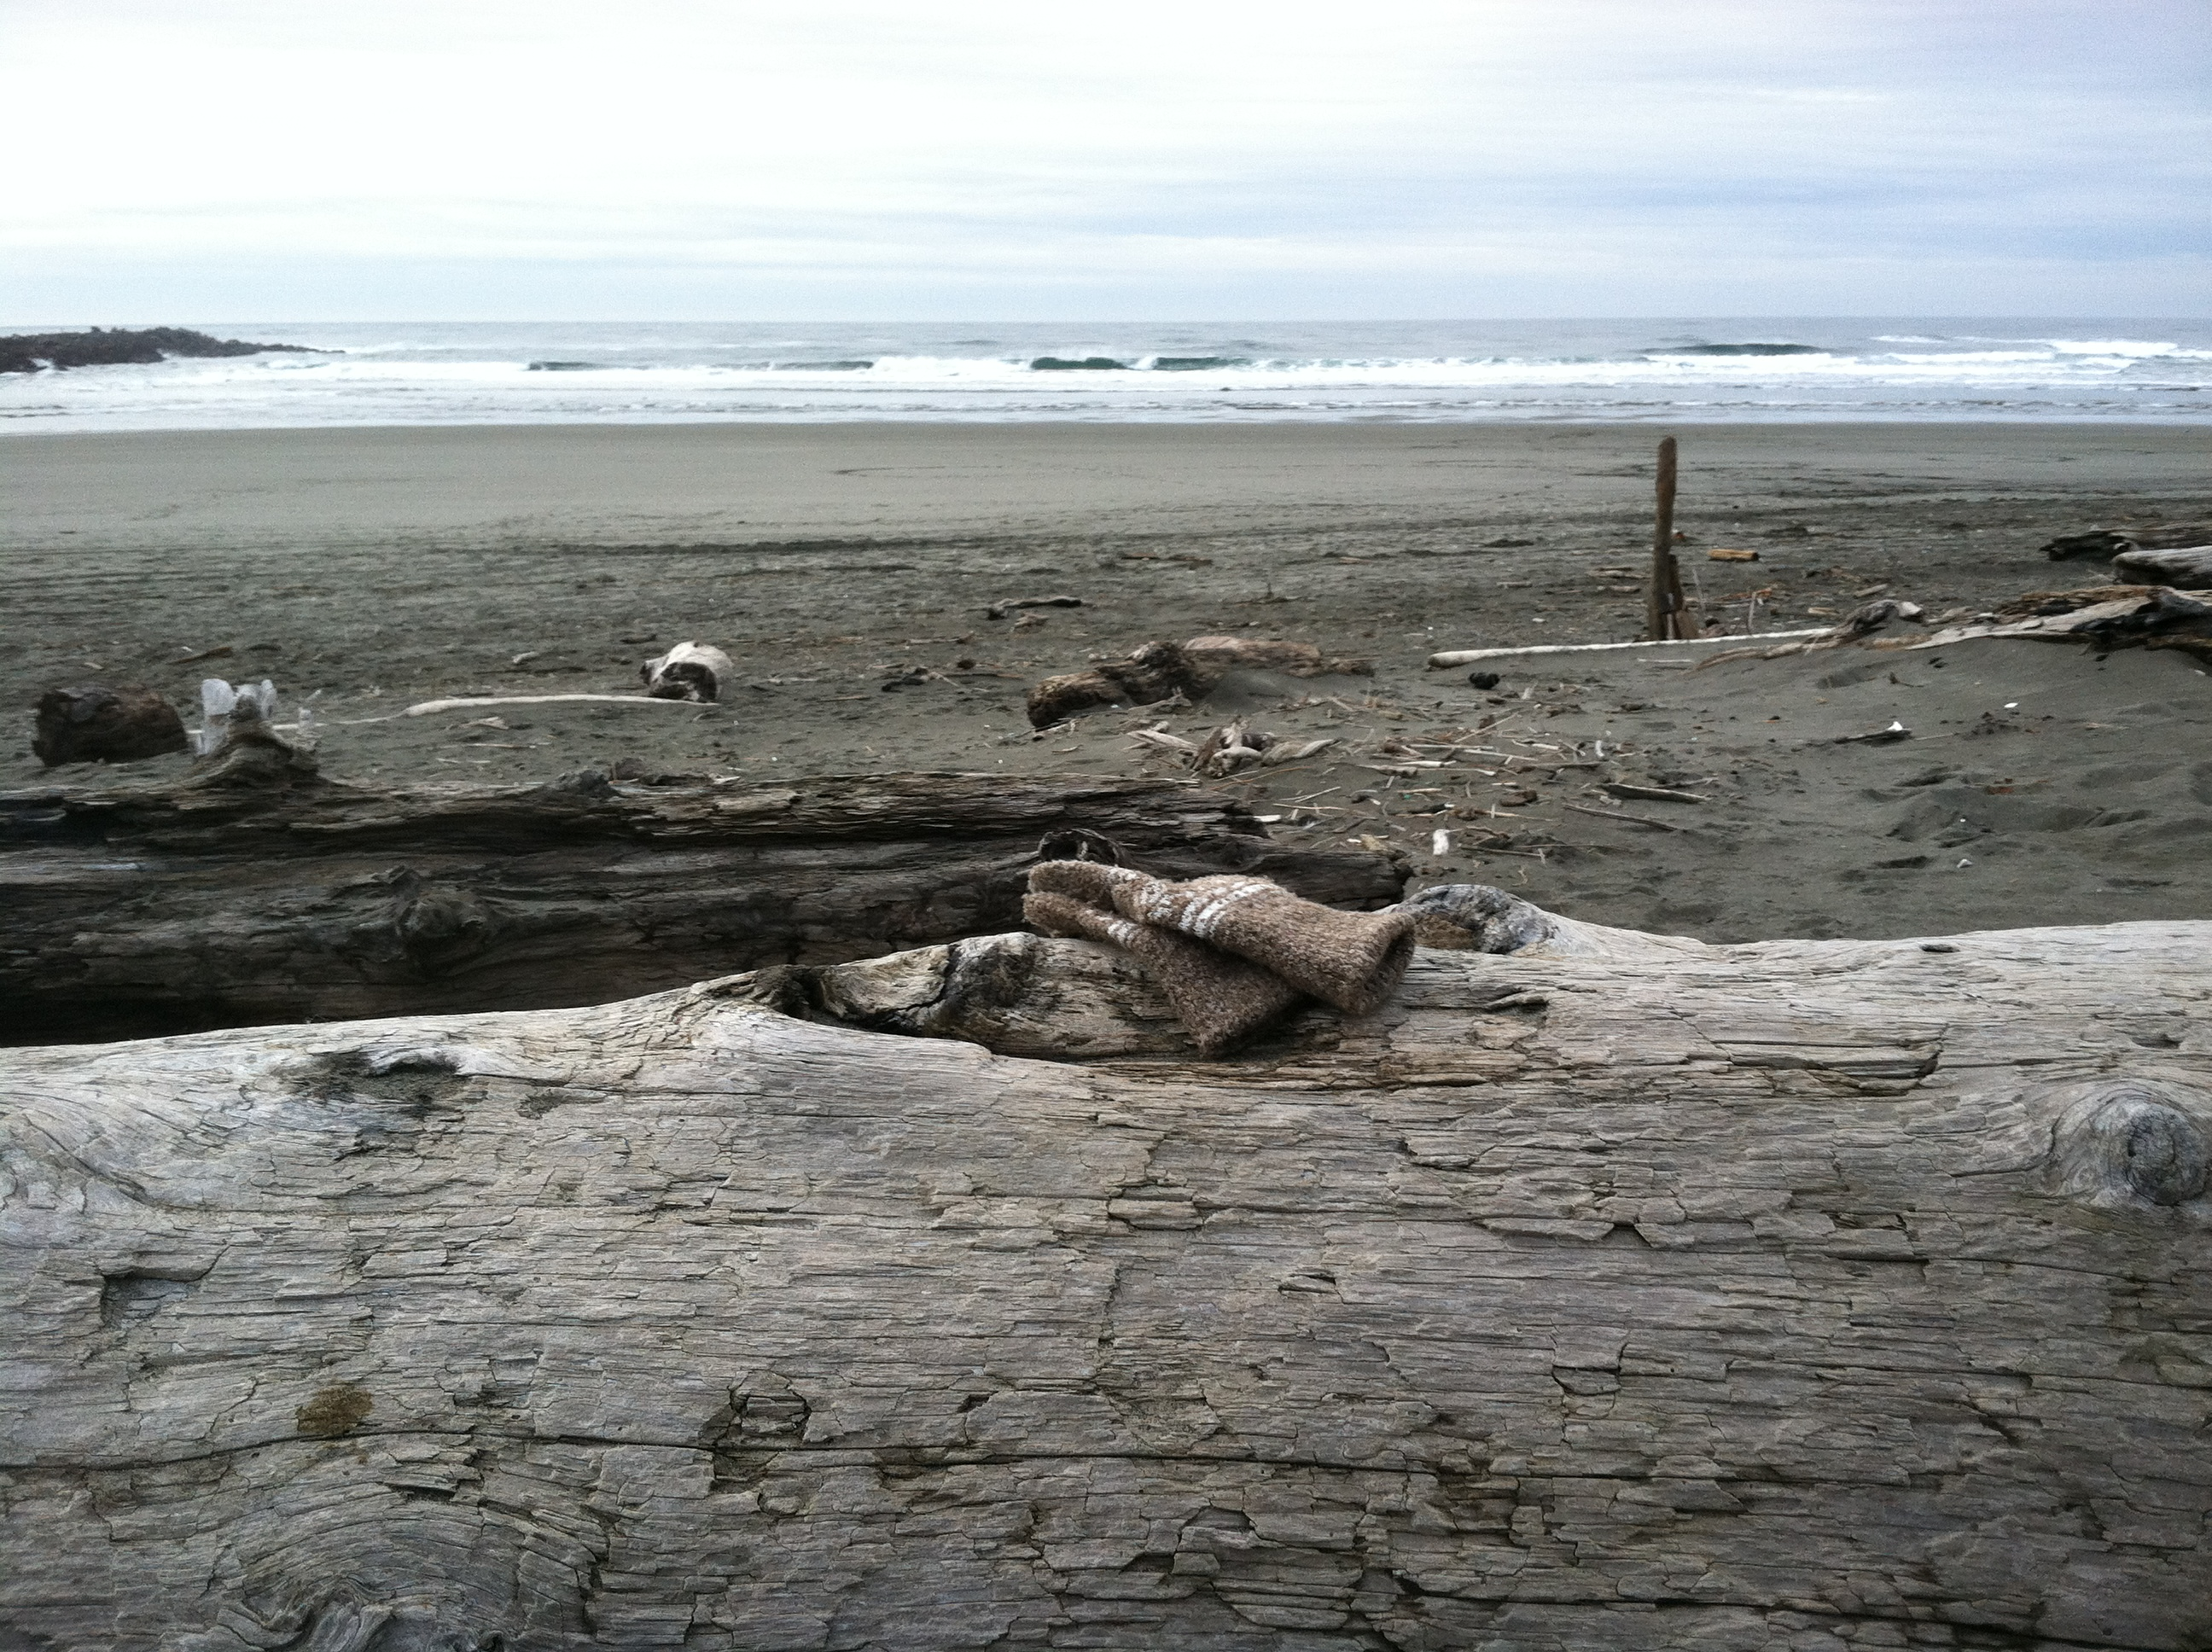 Sitting Log at the North Jetty in Ocean Shores, Washington